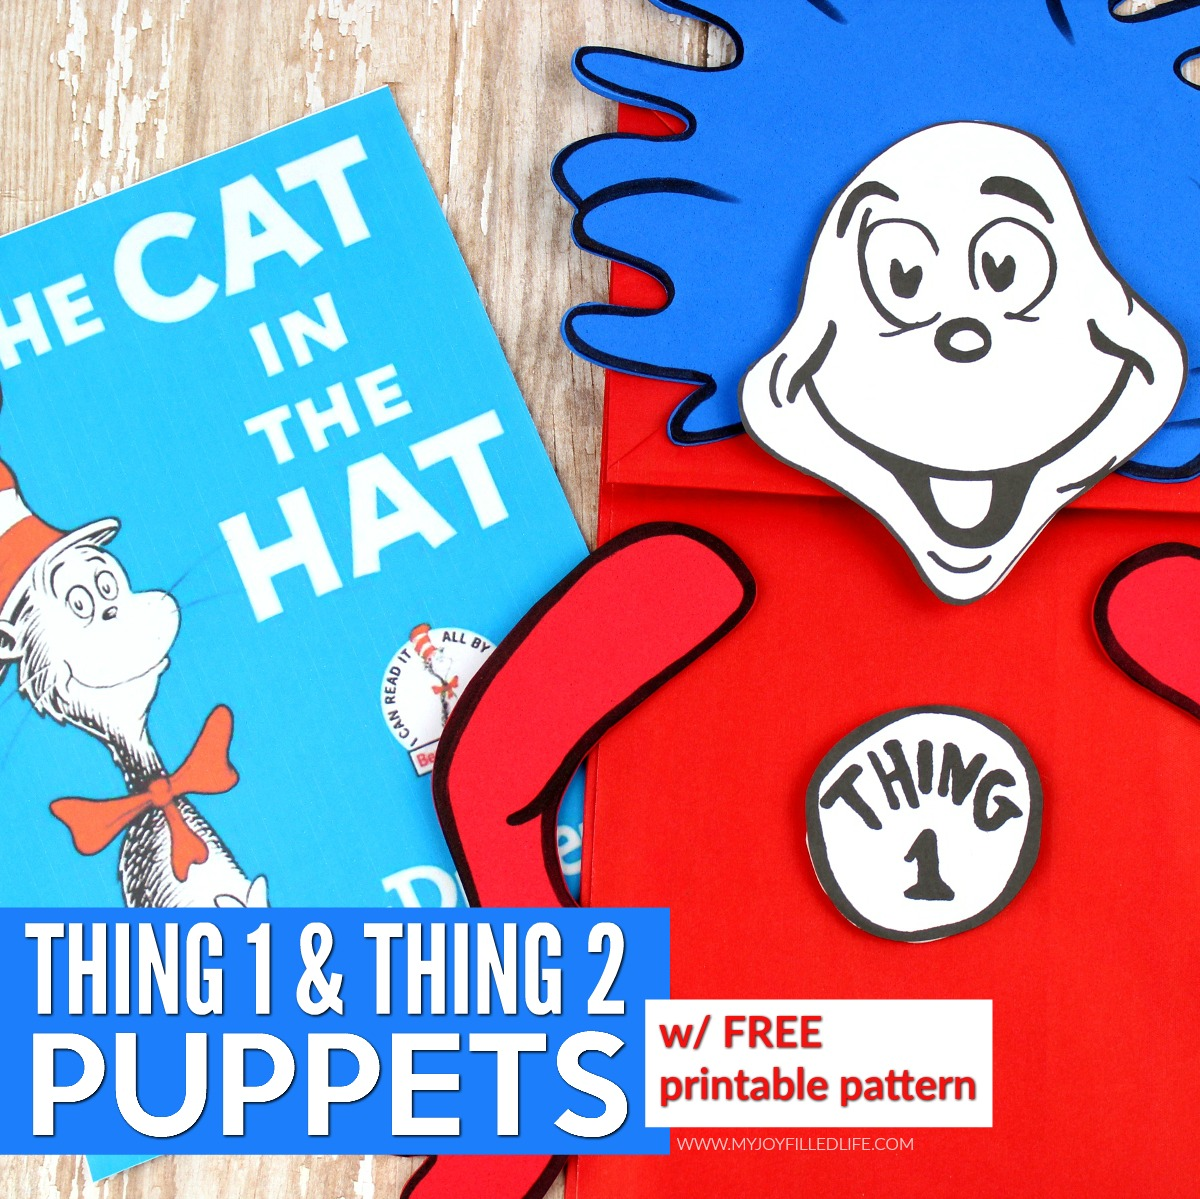 Thing 1 & Thing 2 Puppets